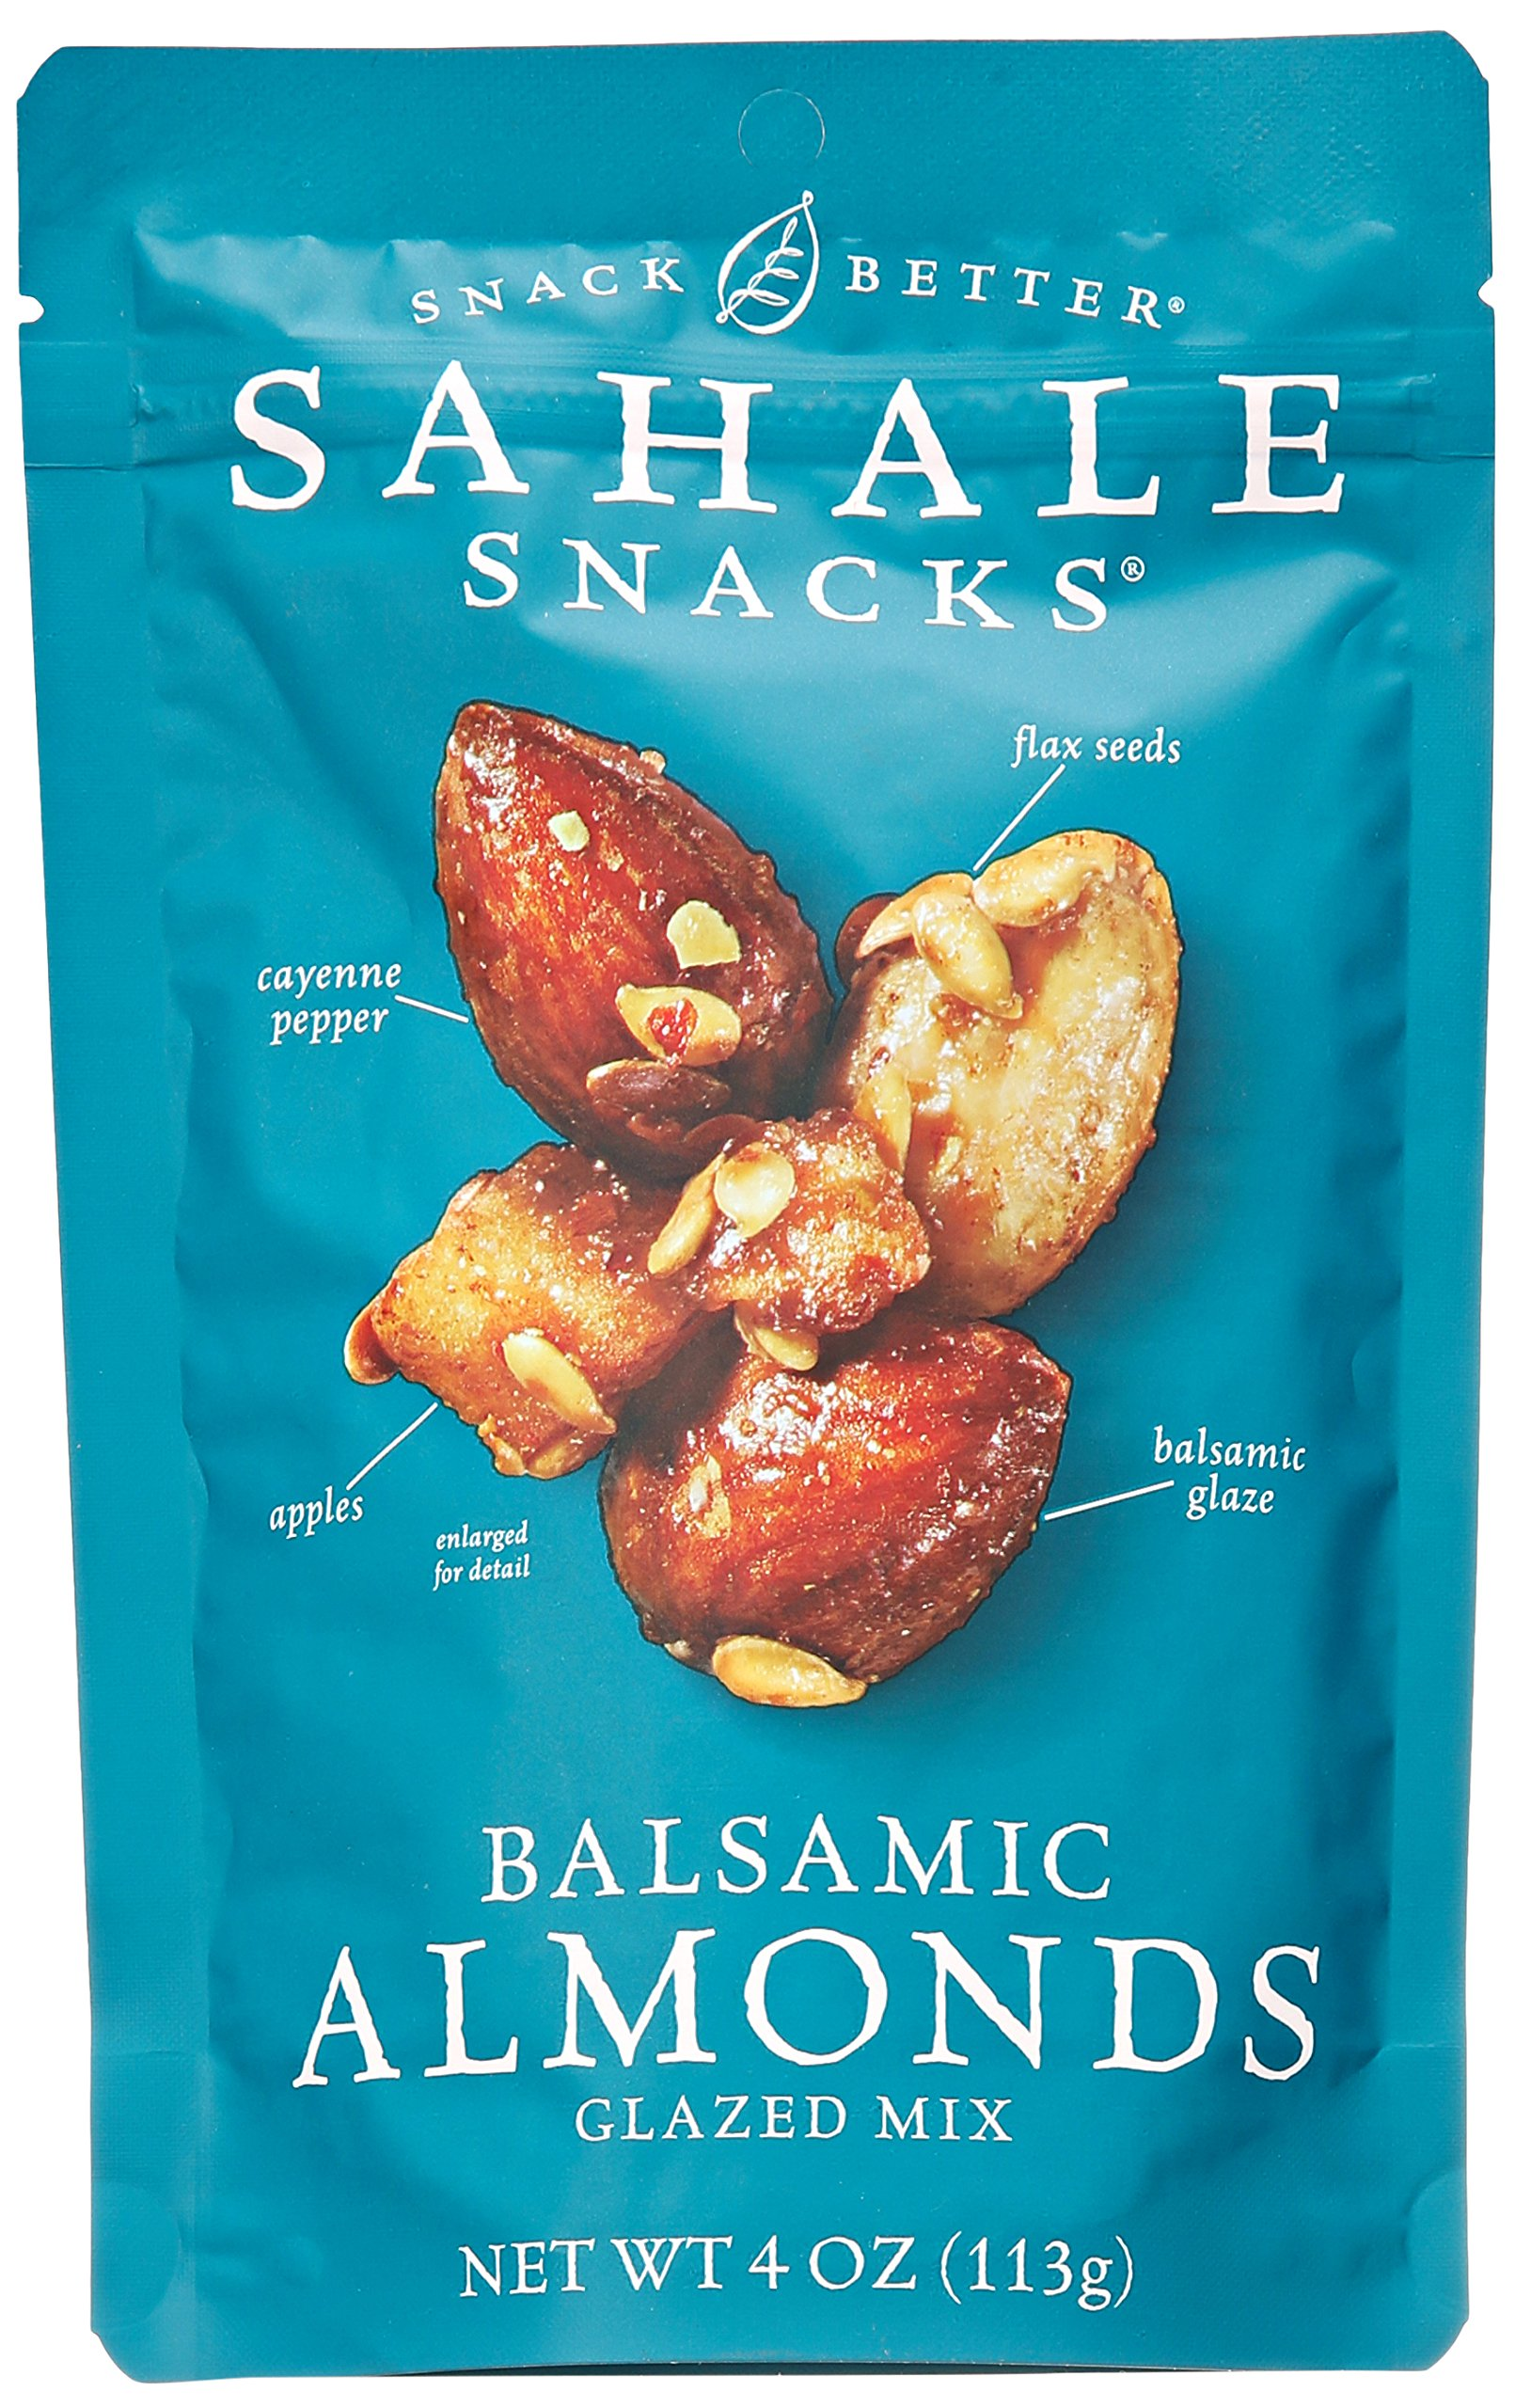 Sahale Snacks Balsamic Almonds Glazed Mix, 4 oz. - Nut Snacks in a Grab 'n Go Pouch, No Artificial Flavors, Preservatives or Colors, Gluten-Free Snacks 1 BETTER EVERYDAY SNACKING - When you're on the go to your next adventure, finding the perfect snack can be difficult. But with Sahale balsamic almonds glazed nuts snacks, you'll always have a delicious and wholesome option to stay energized and satisfied. PERFECT BALANCE - These nut snacks feature the perfect blend of whole dry-roasted almonds, dried apples, flax seeds, a pinch of cayenne pepper and it's all finished with a rich, subtly tart balsamic glaze. RESEALABLE POUCH -  The nut mix snacks are in a resealable pouch that helps keep them fresh, so you can enjoy a delicious nut mix in your home, office and more.